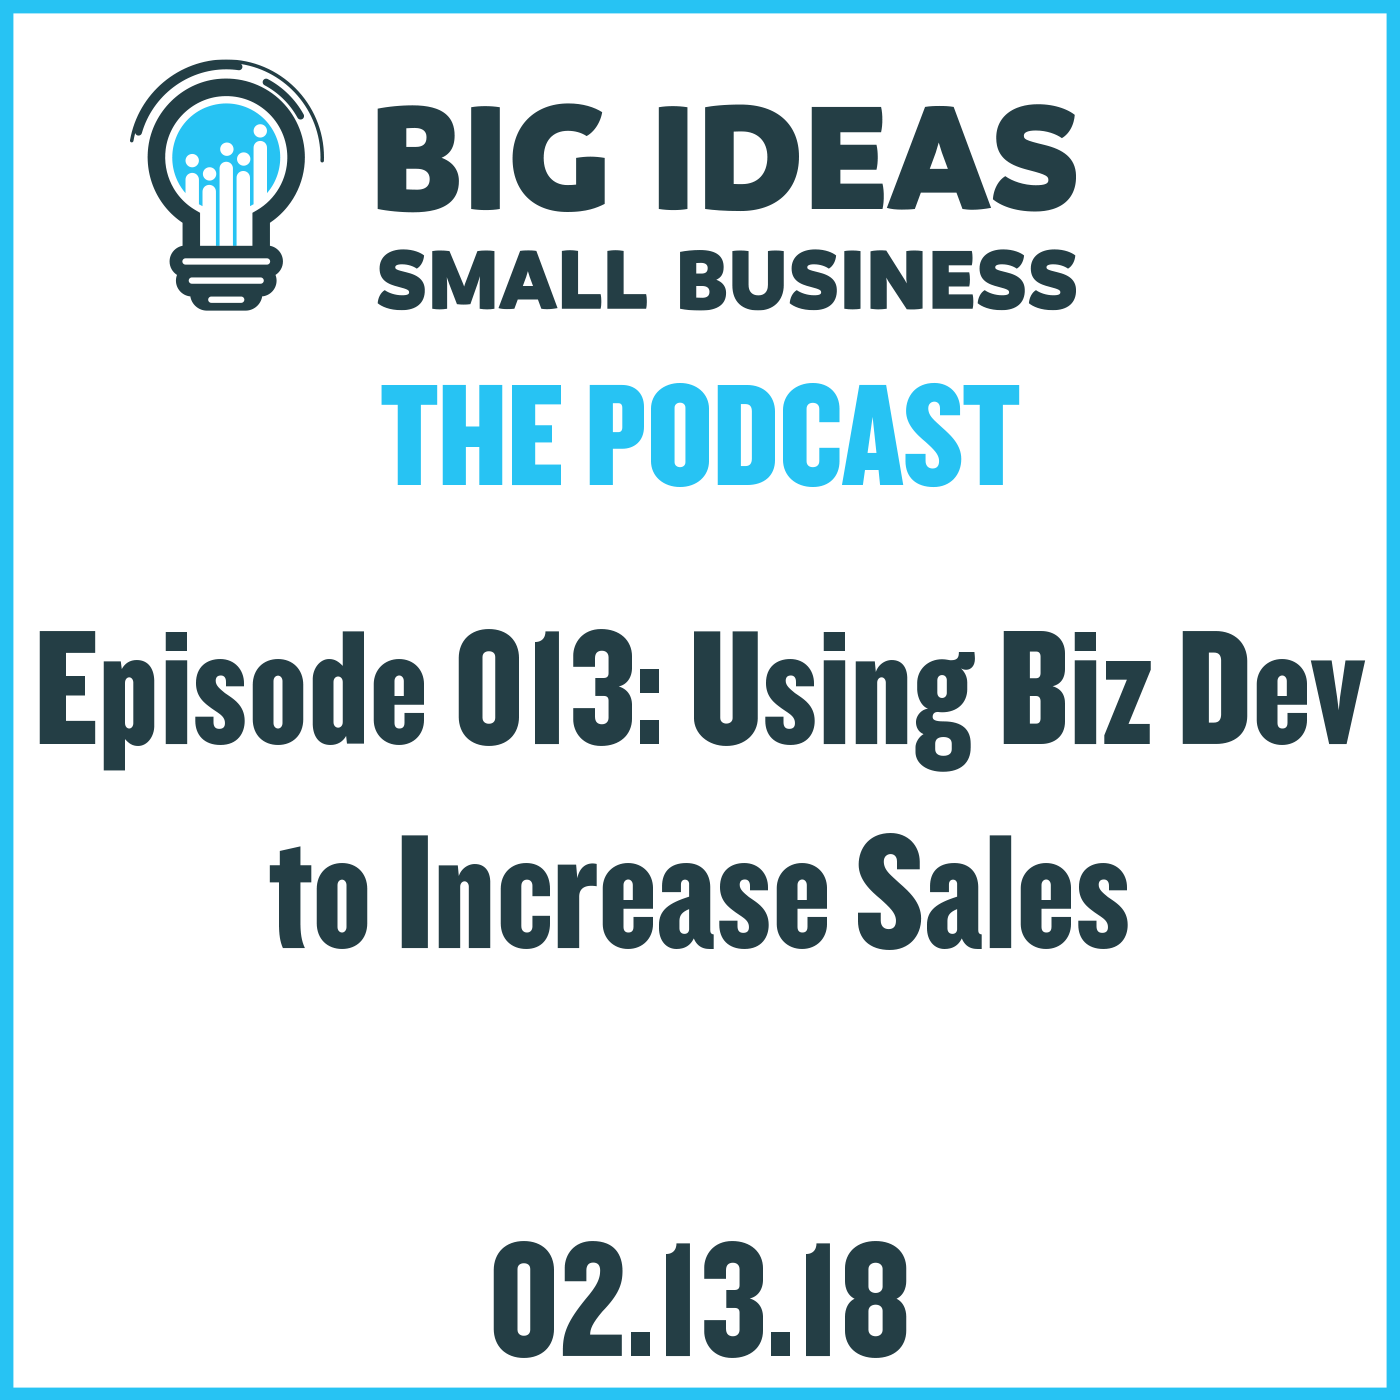 Using Biz Dev to Increase Sales